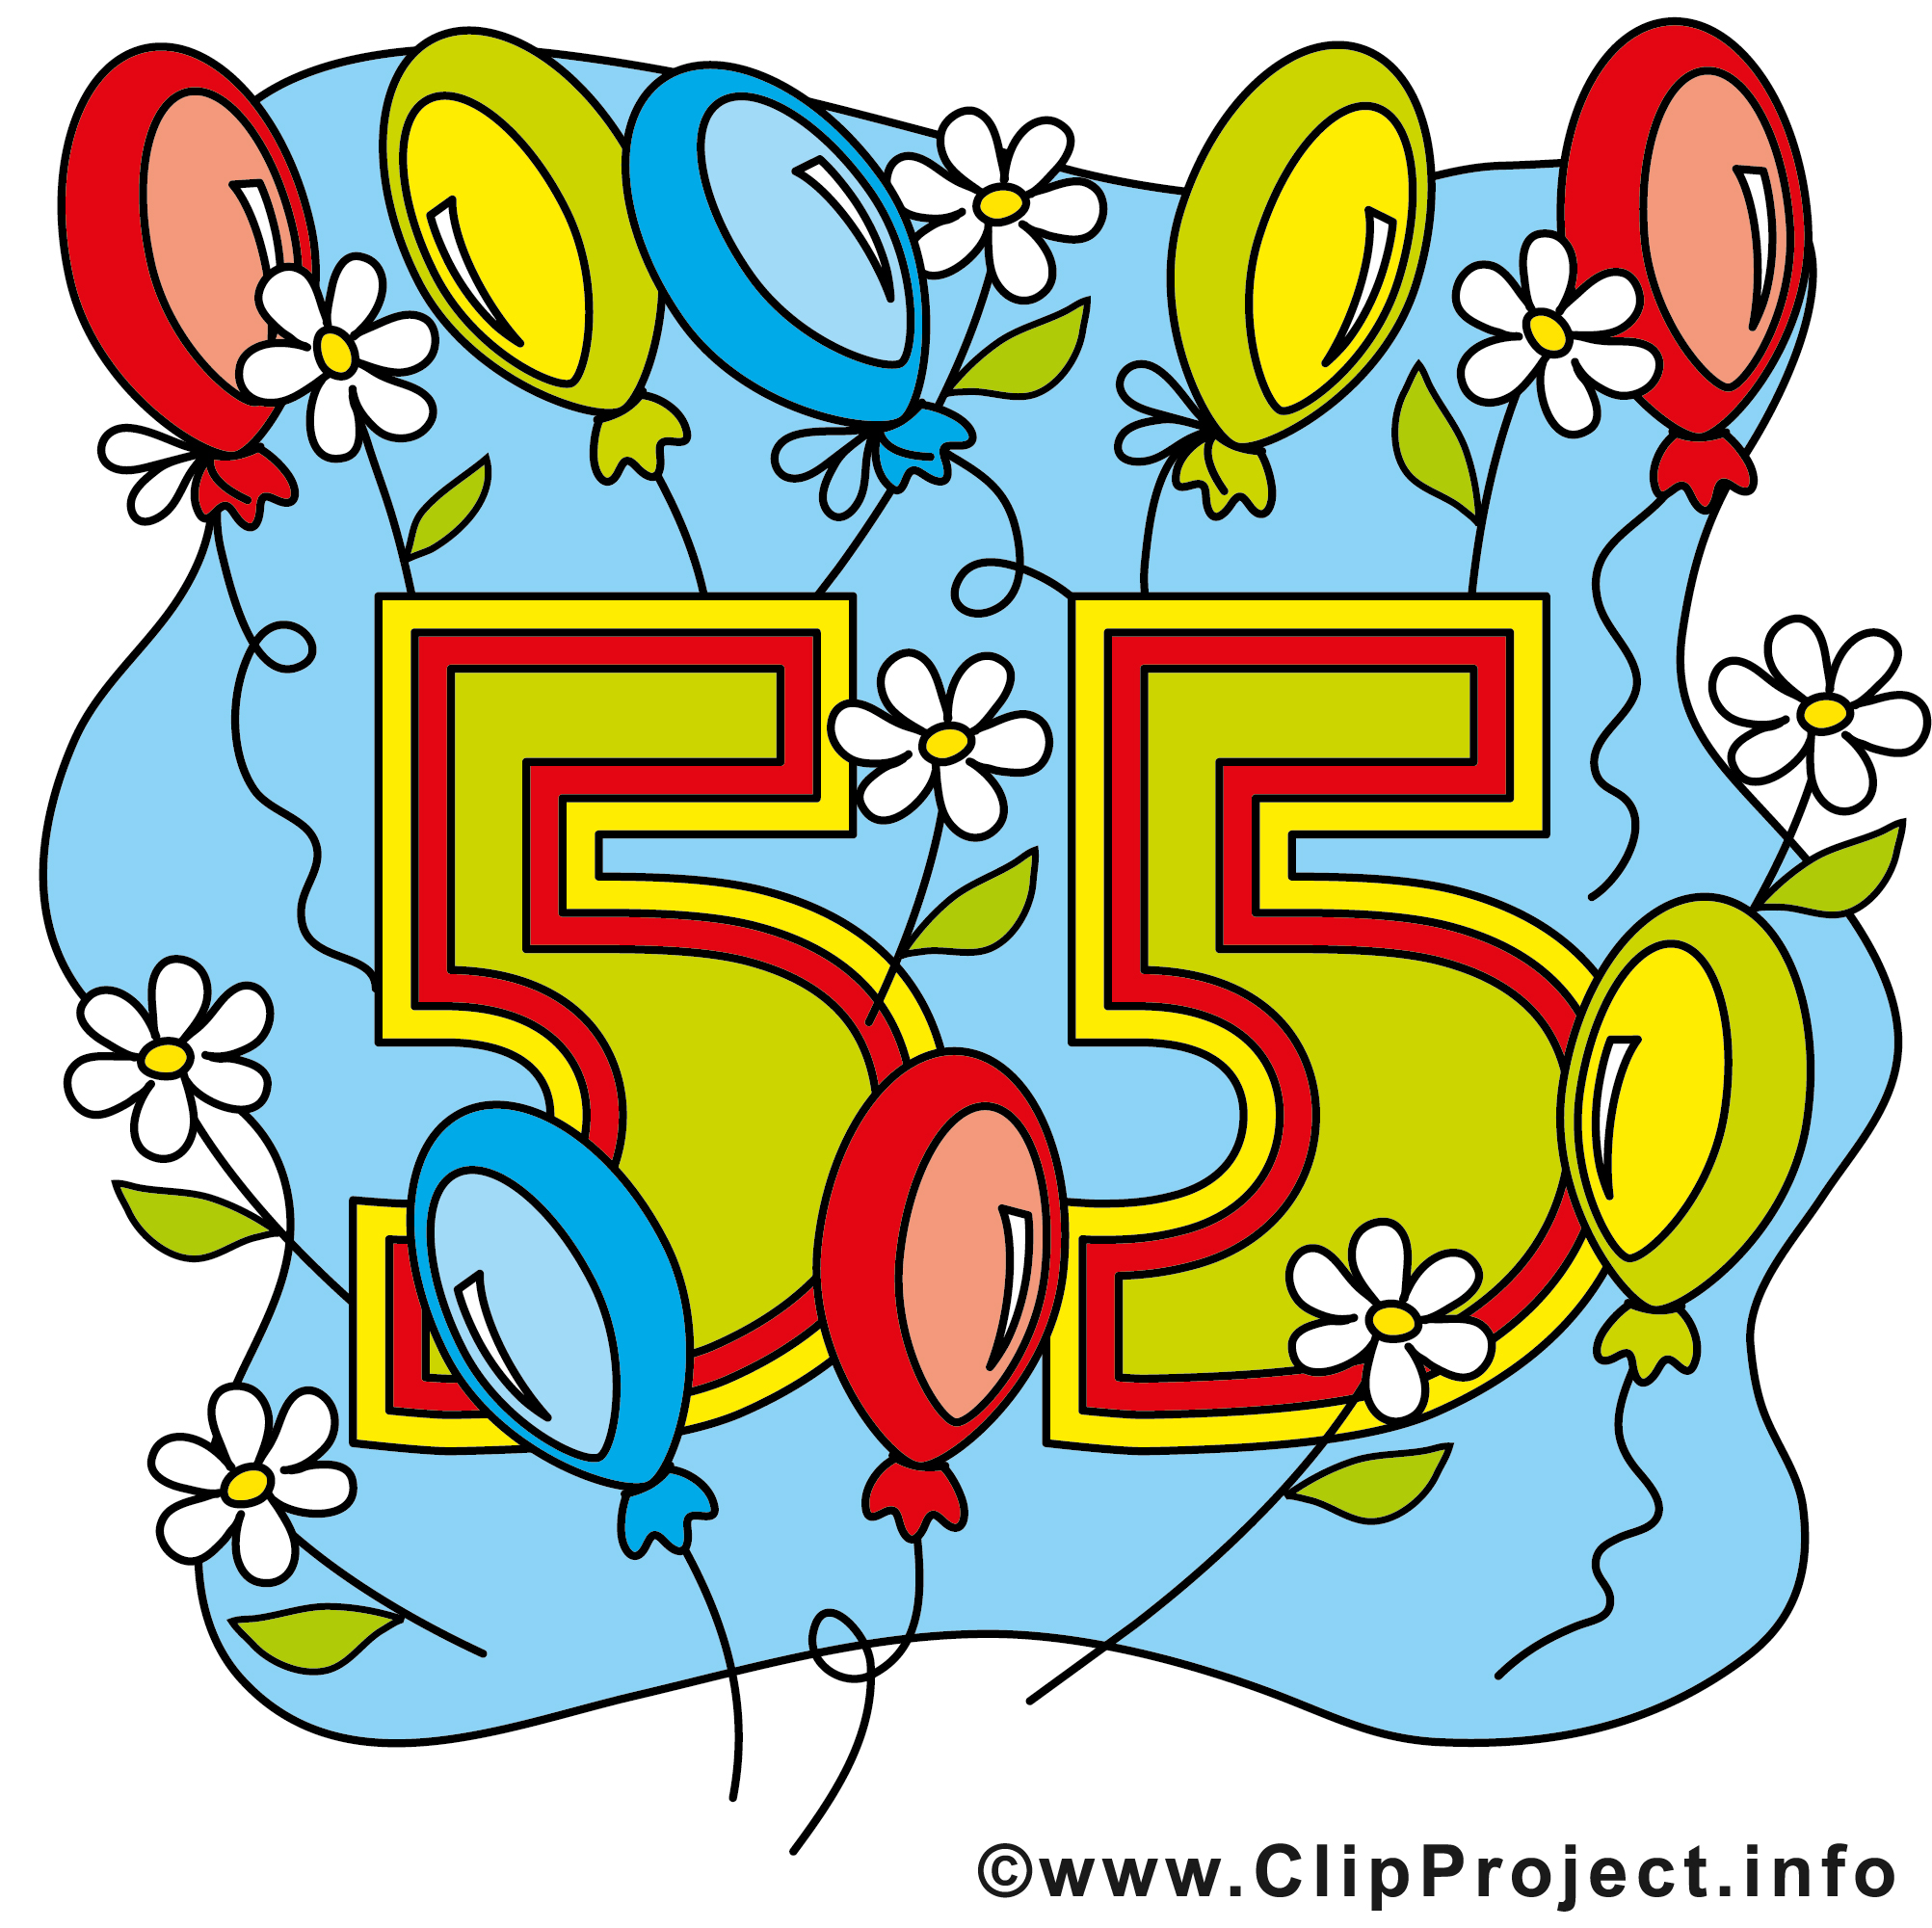 55 Jahre Cliparts free.